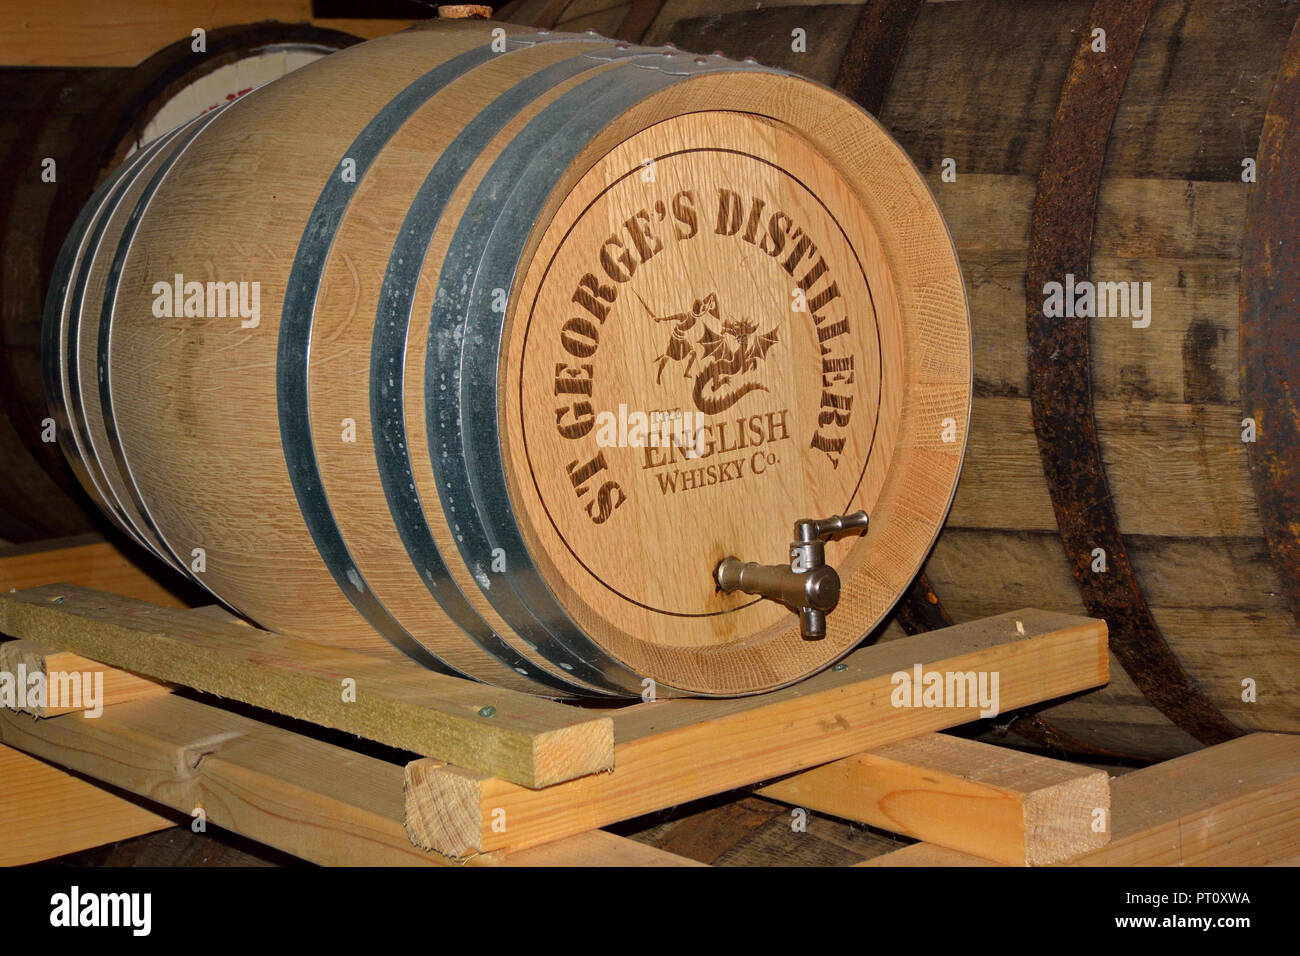 Oak cask of single malt English Whisky maturing in the warehouse at St George's Distillery, Roudham, Norfolk, UK. Stock Photo